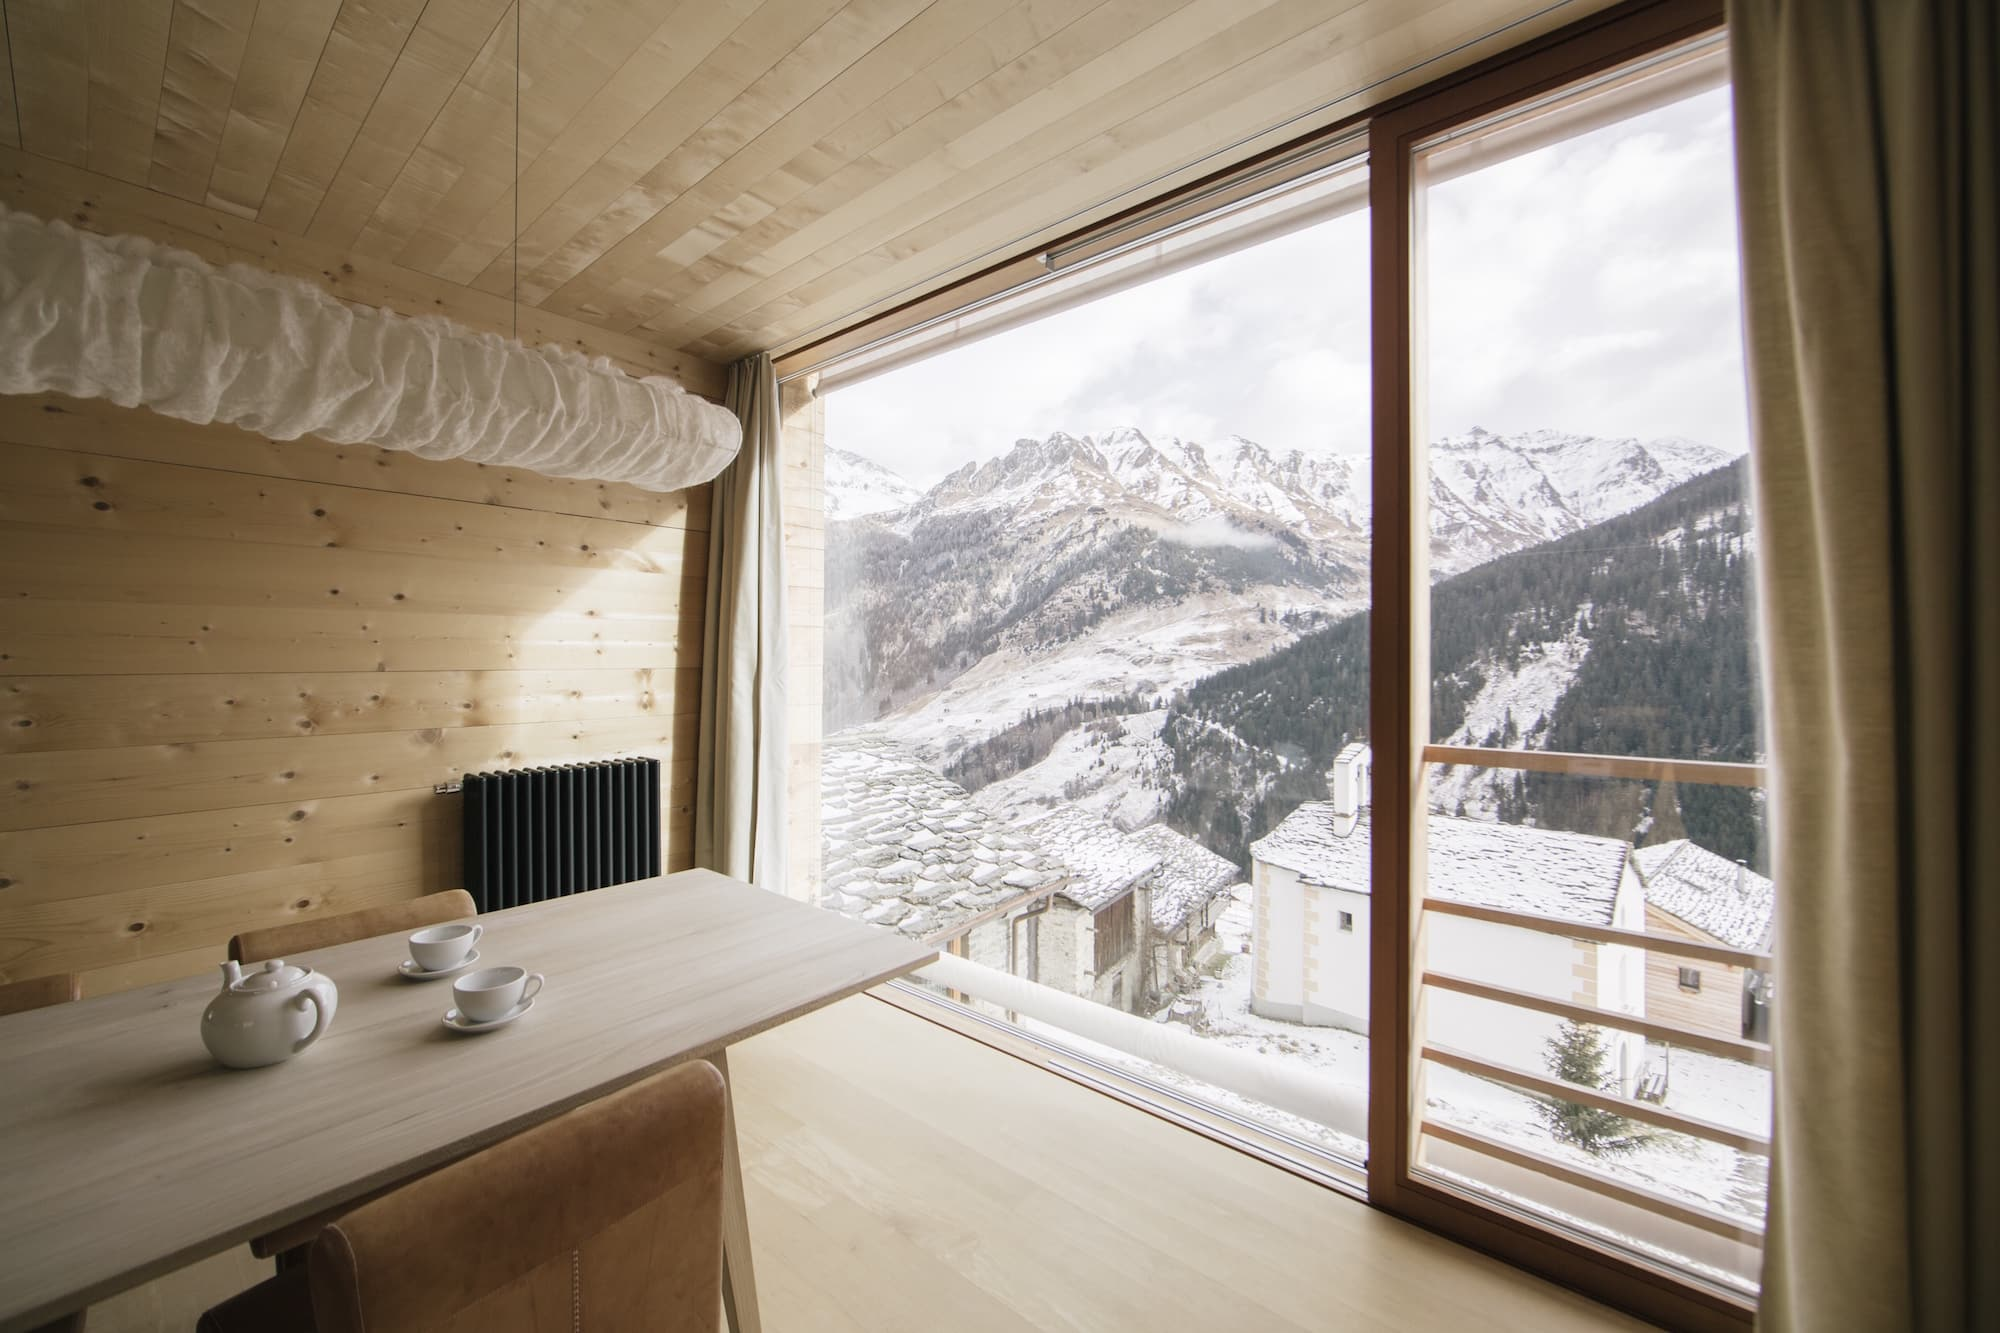 Only Peter Zumthor could make a spartan pine interior look this luxe.